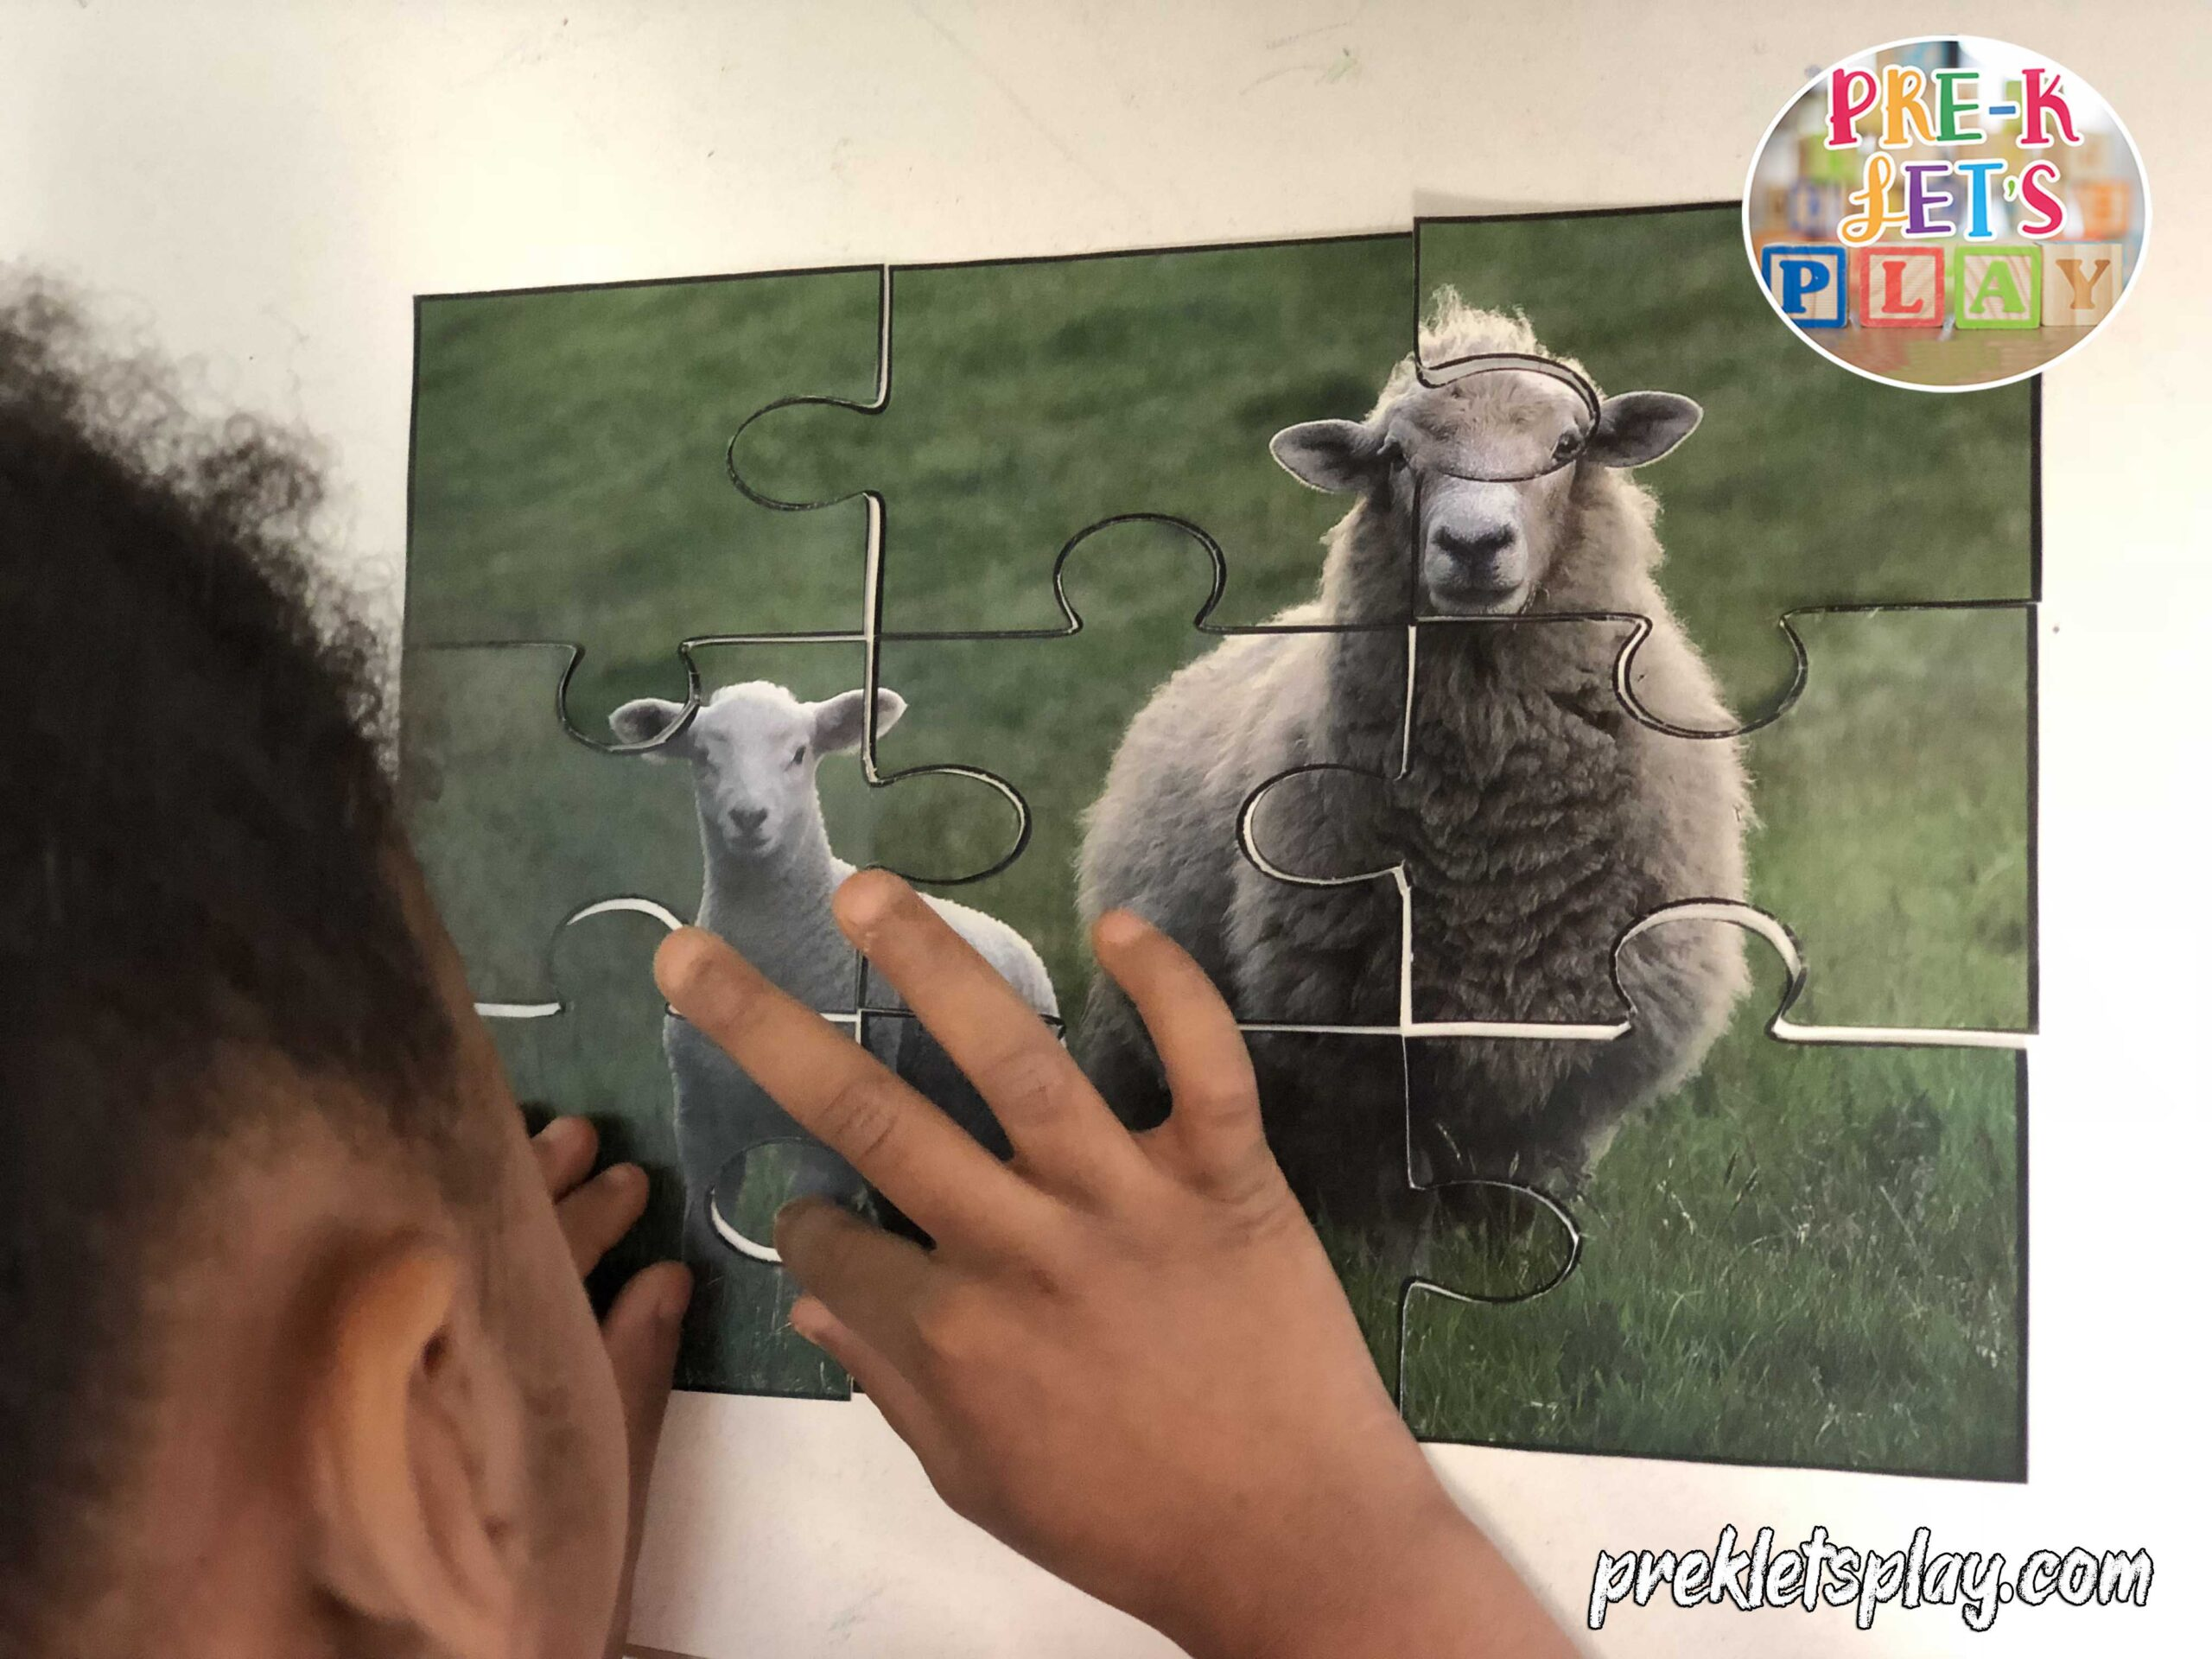 childing using their fine motor skills to fit this preschool picture puzzle of a sheep and their baby together.